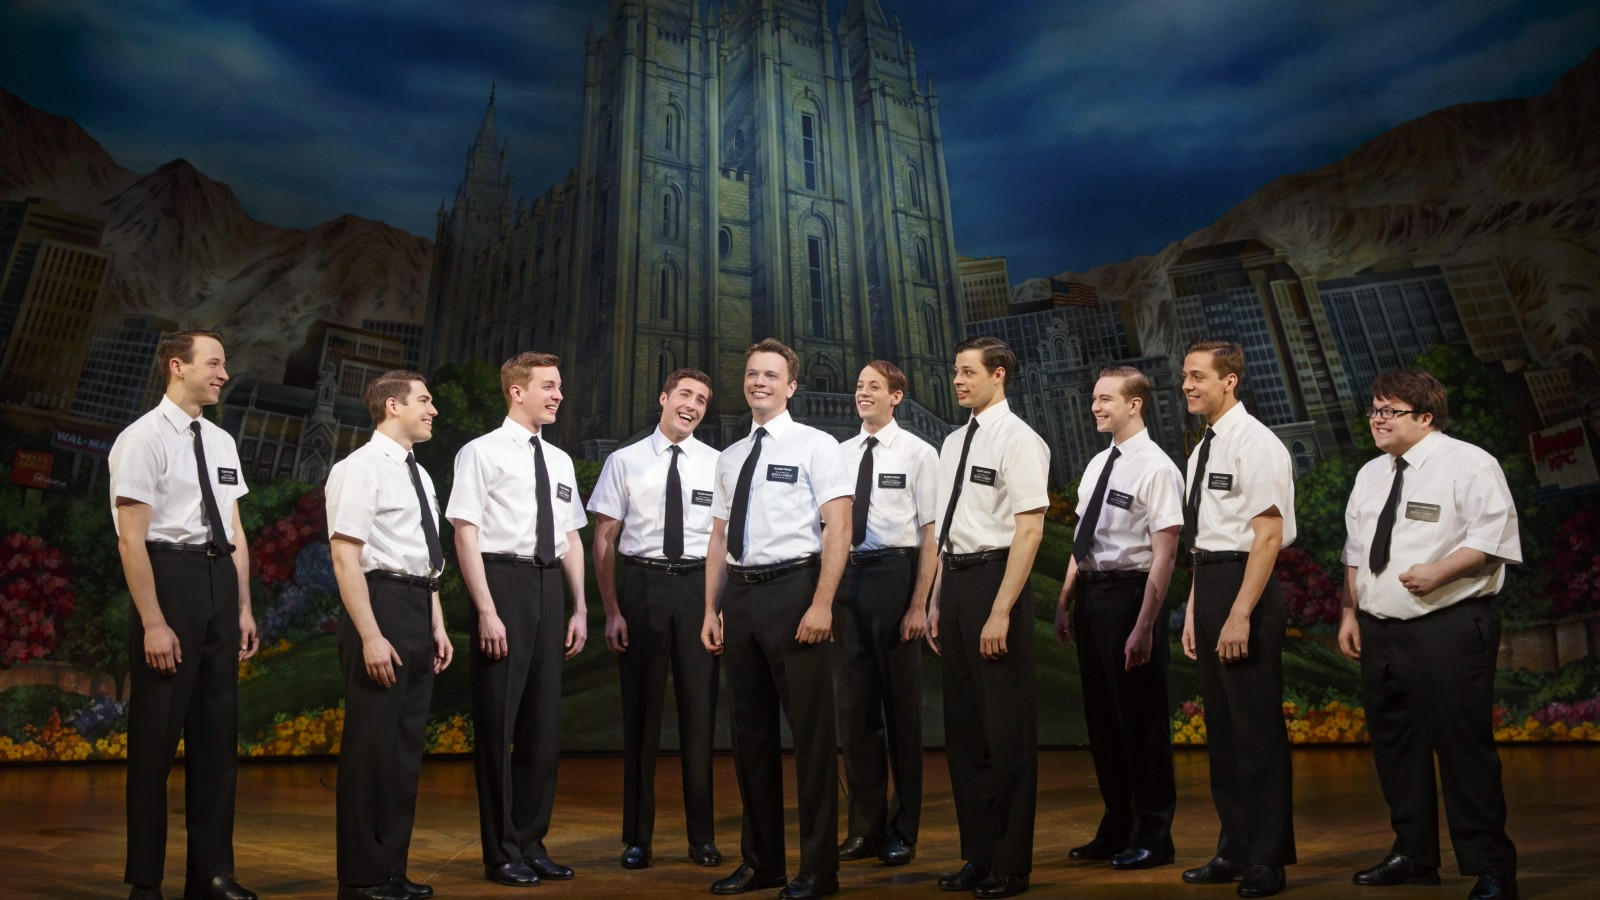 'The Book of Mormon' opens Tuesday in Shea's Performing Arts Center.